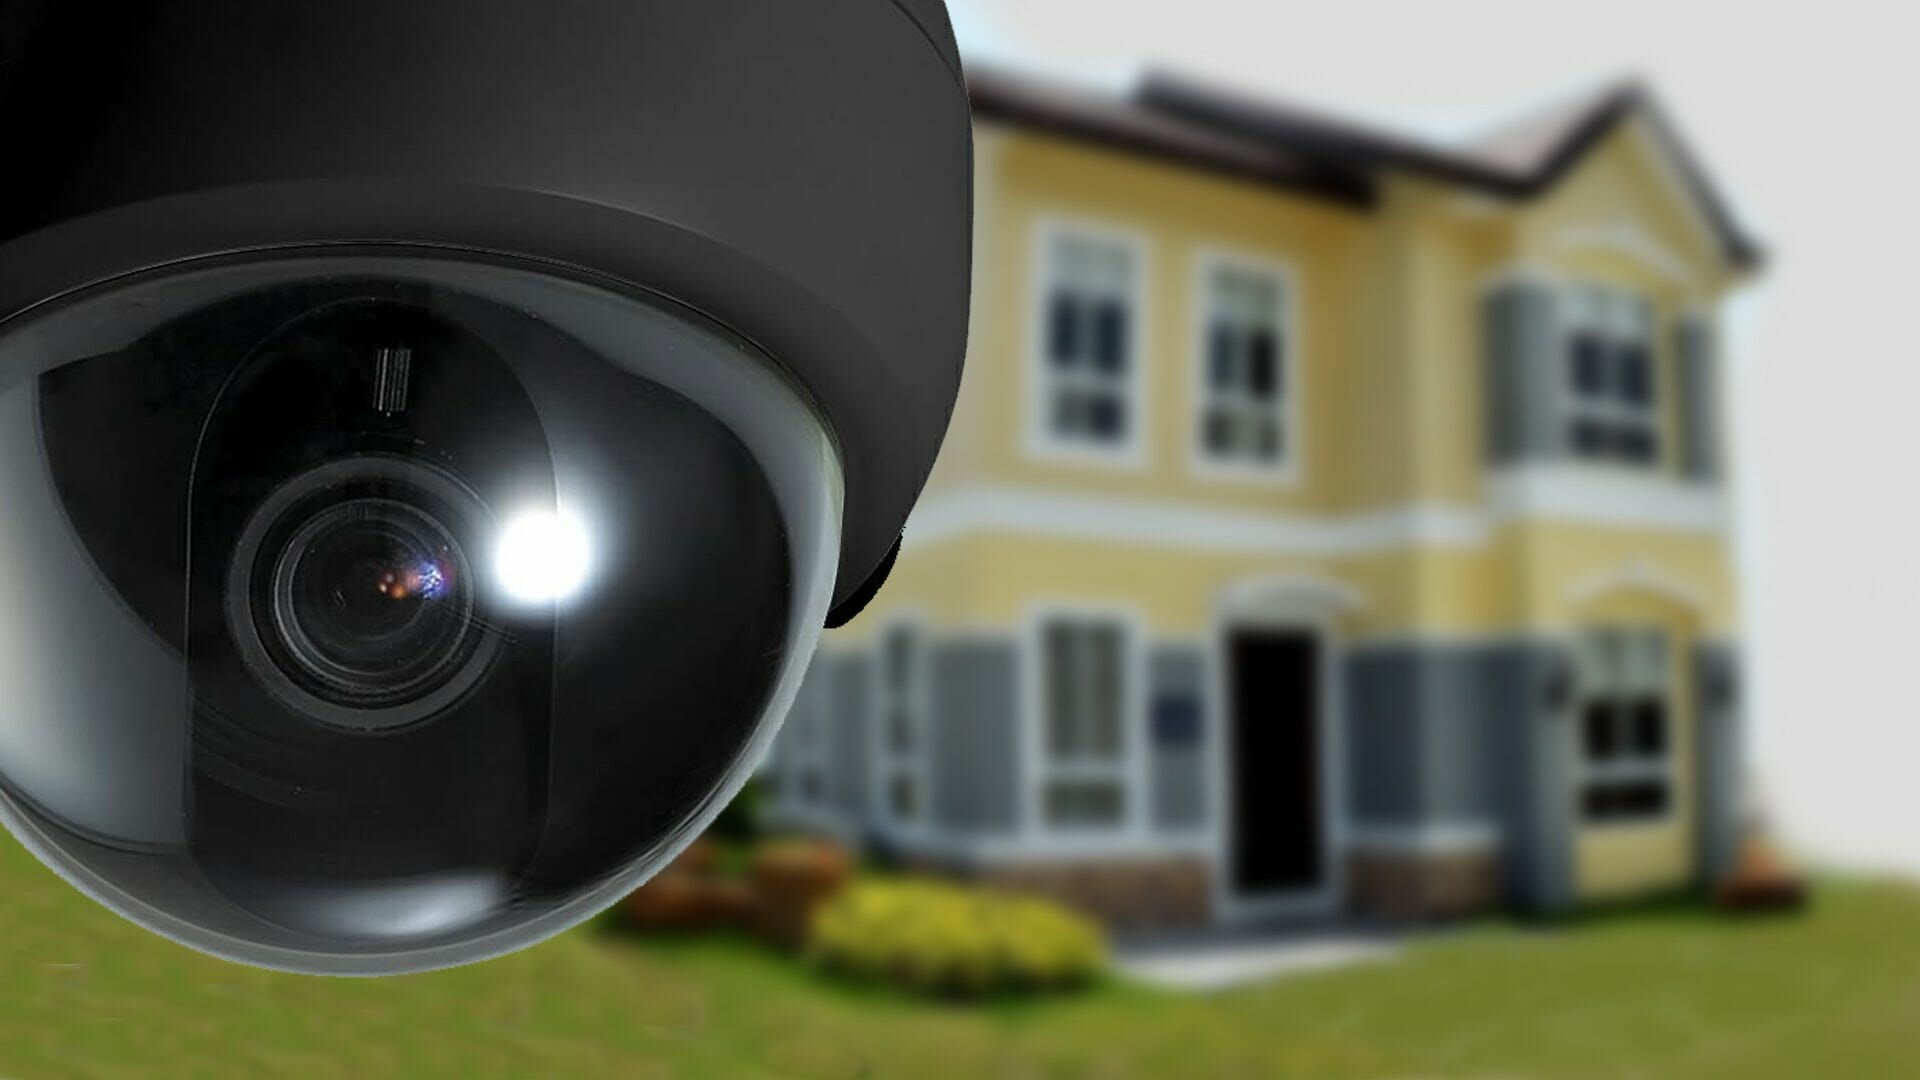 Camera Exterieur Homekit Home Security Camera Review - D-link Omna 180 Cam Hd - Homekit